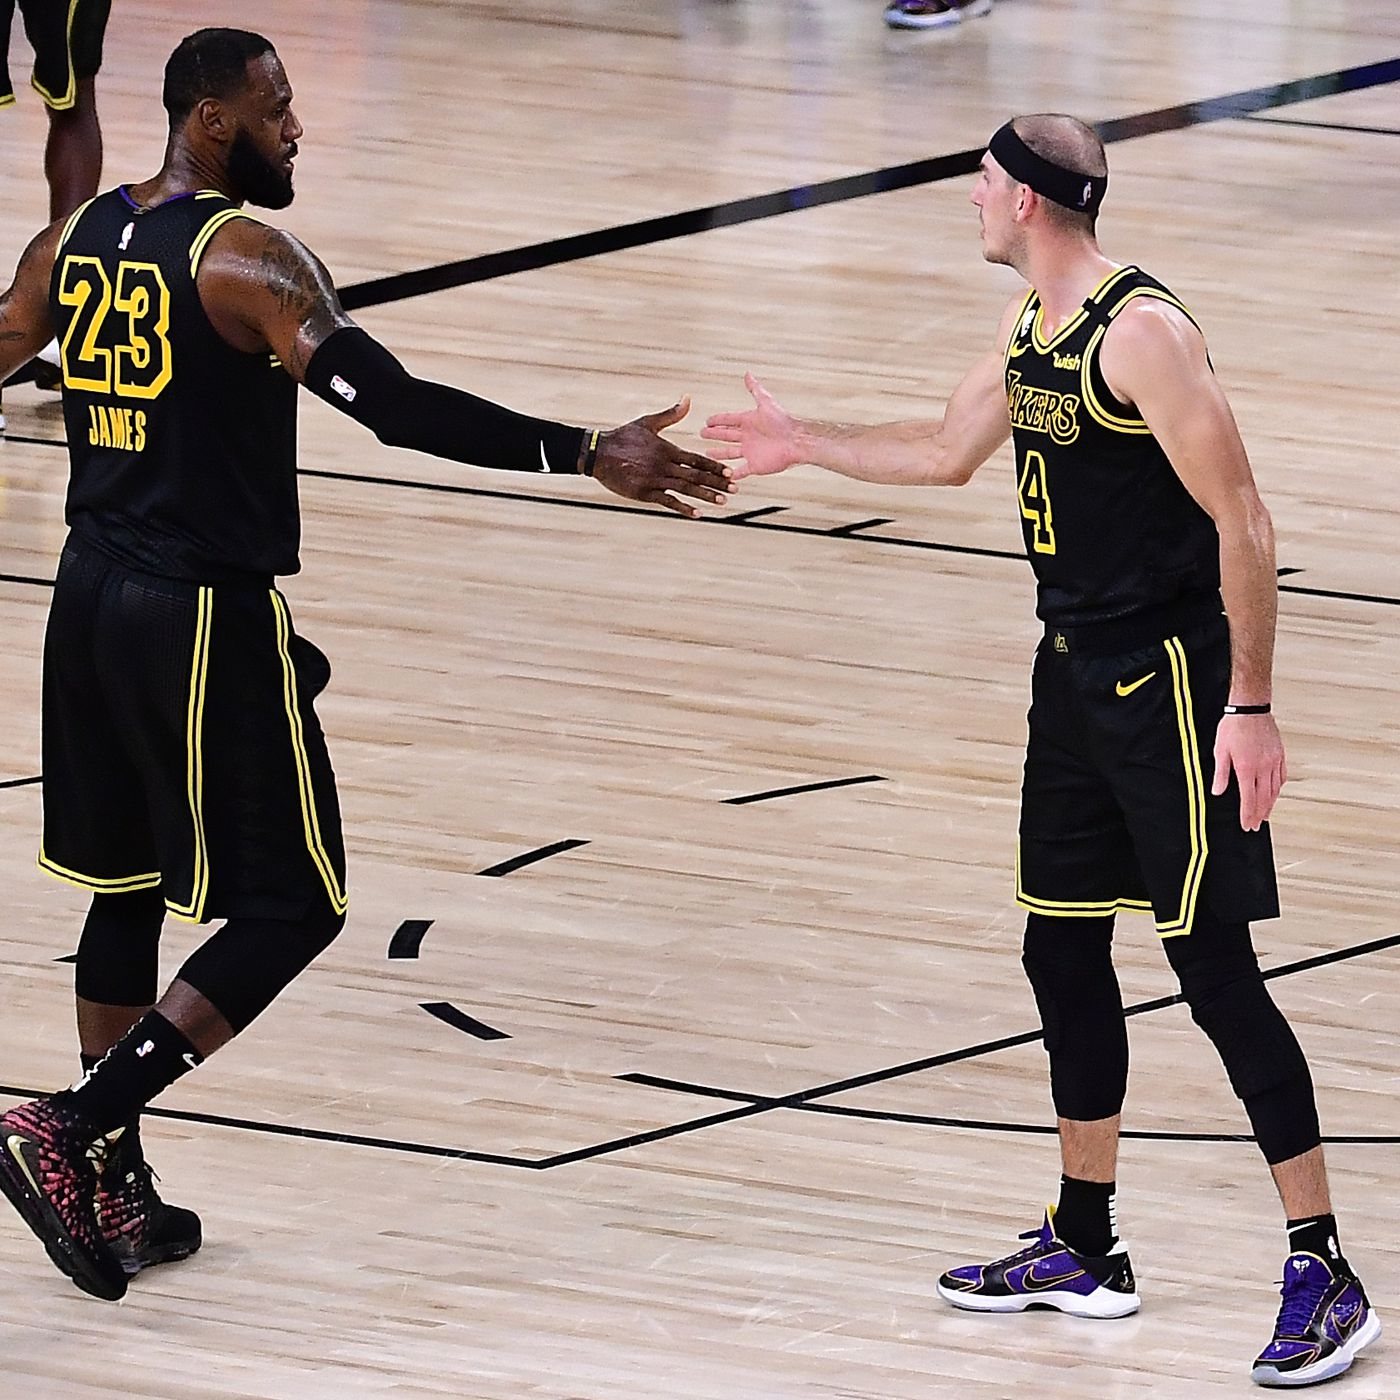 Nba Playoffs Breaking Down The Lakers Win Over The Rockets In Game 2 Silver Screen And Roll